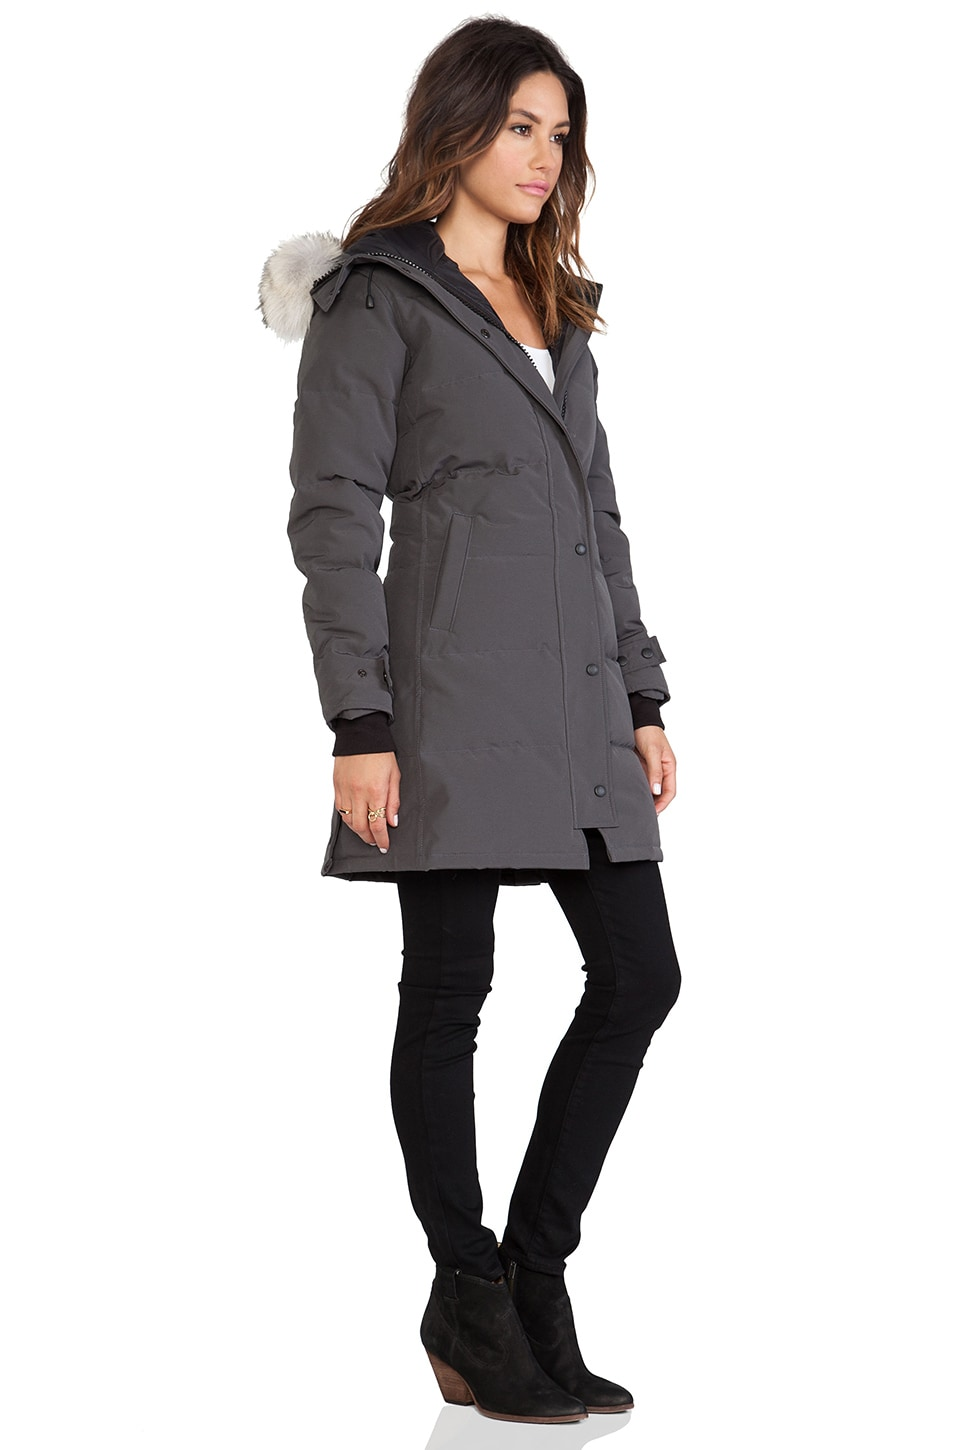 Canada Goose langford parka outlet price - Canada Goose Shelburne Parka with Coyote Fur Trim in Graphite ...